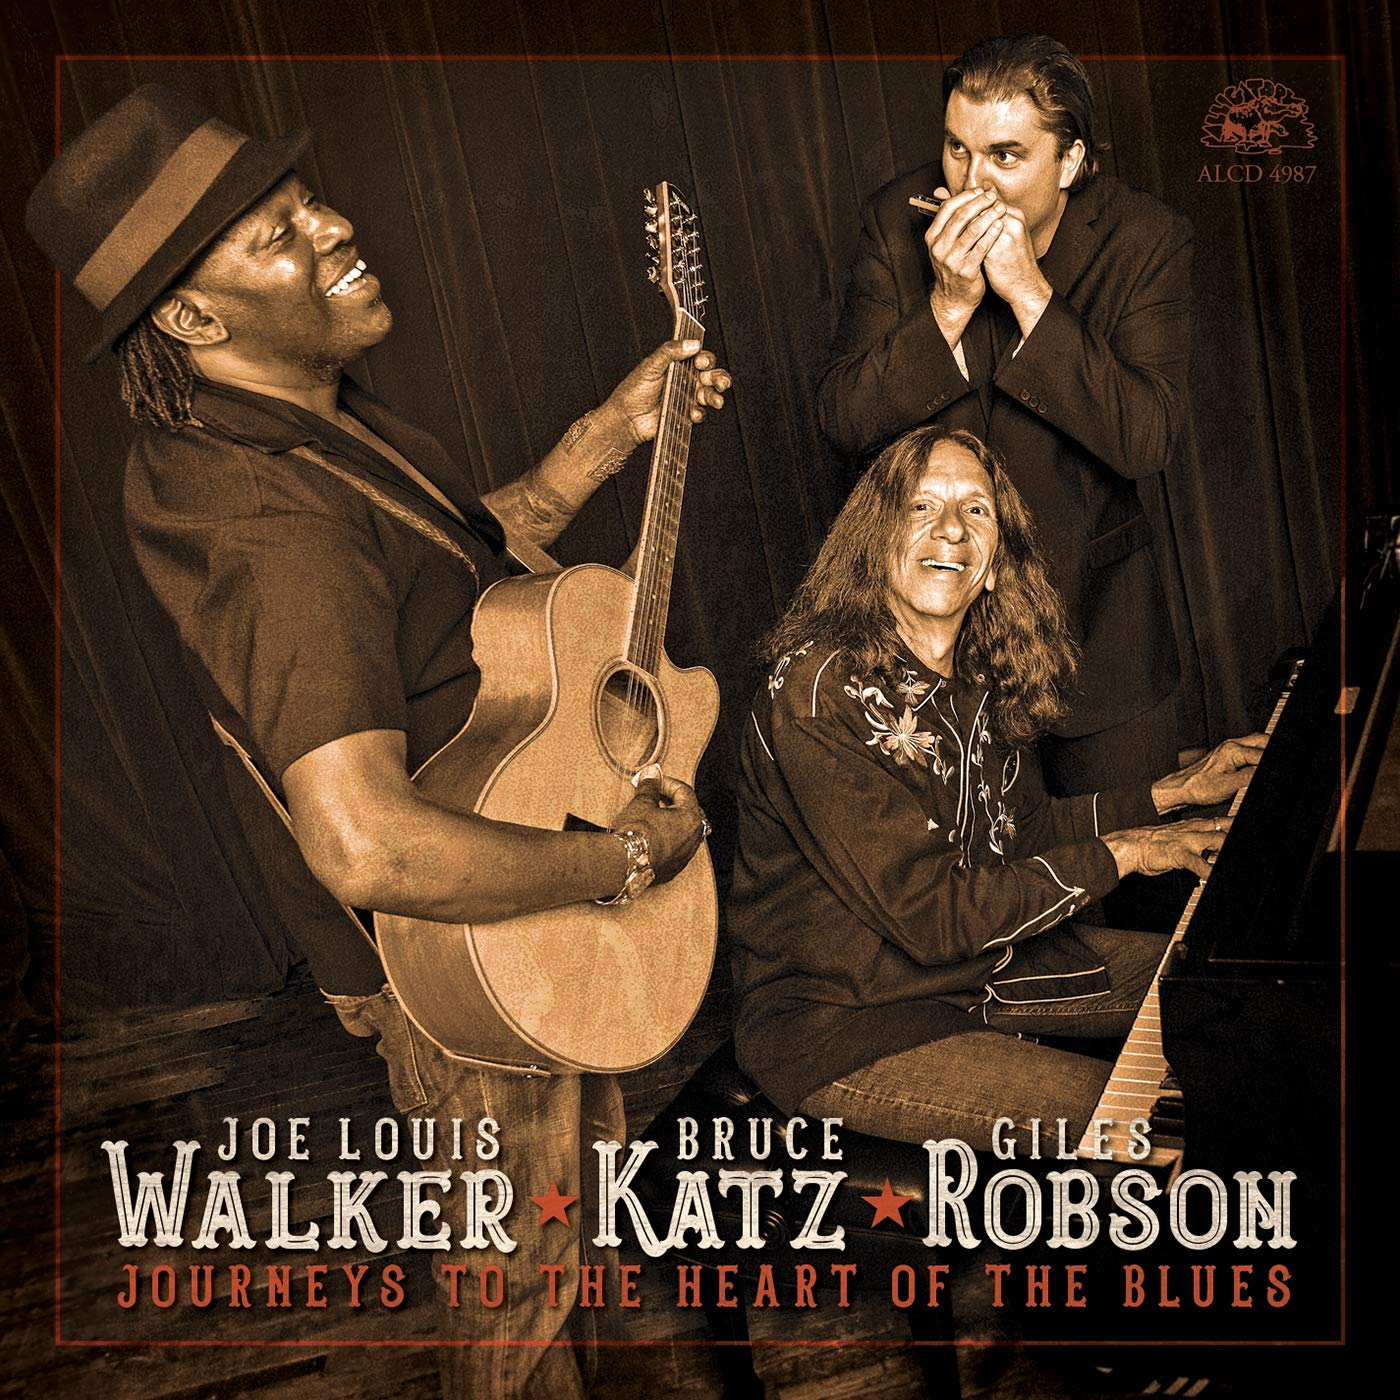 CD : JOE LOUIS WALKER | BRUCE KATZ | GILES ROBSON - Journeys To The Heart Of The Blues (CD)